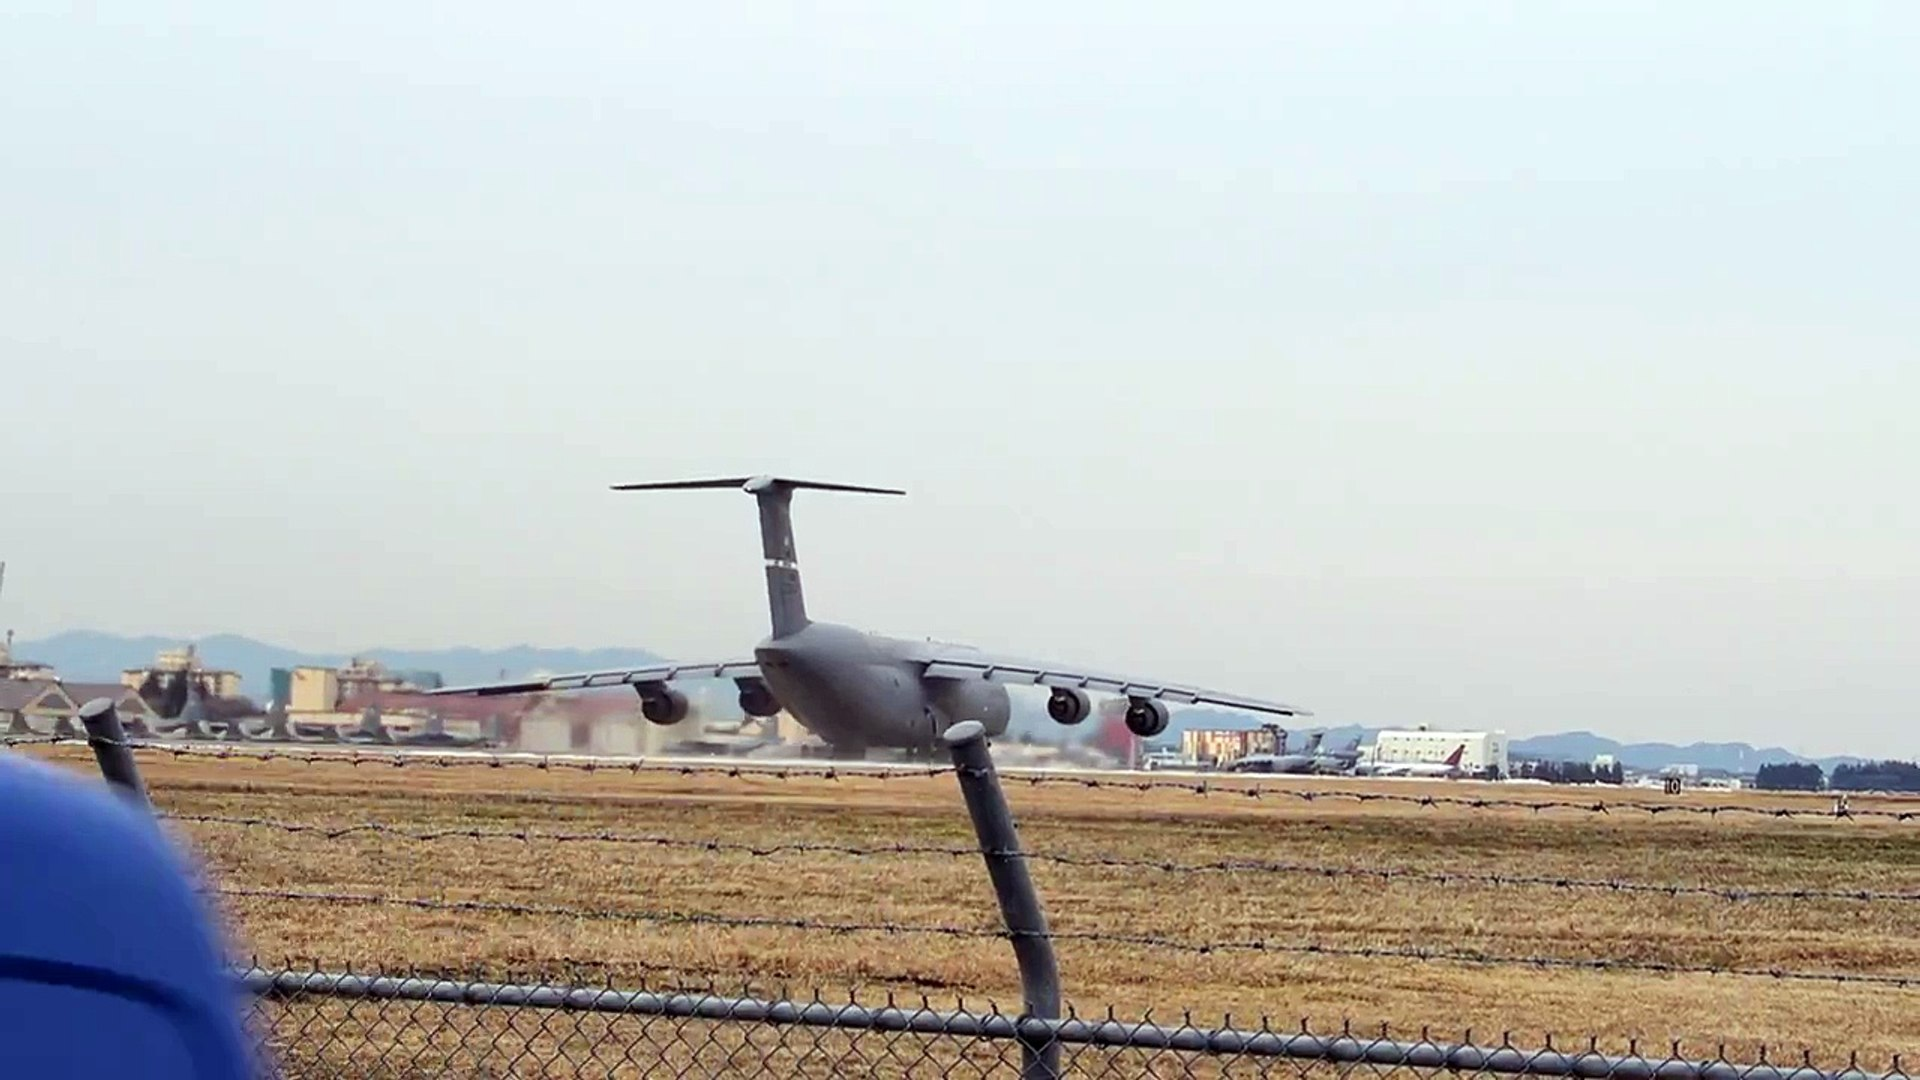 C-5M Super Garaxy - Takeoff at Yokota Air Base 2016/1/23 横田基地